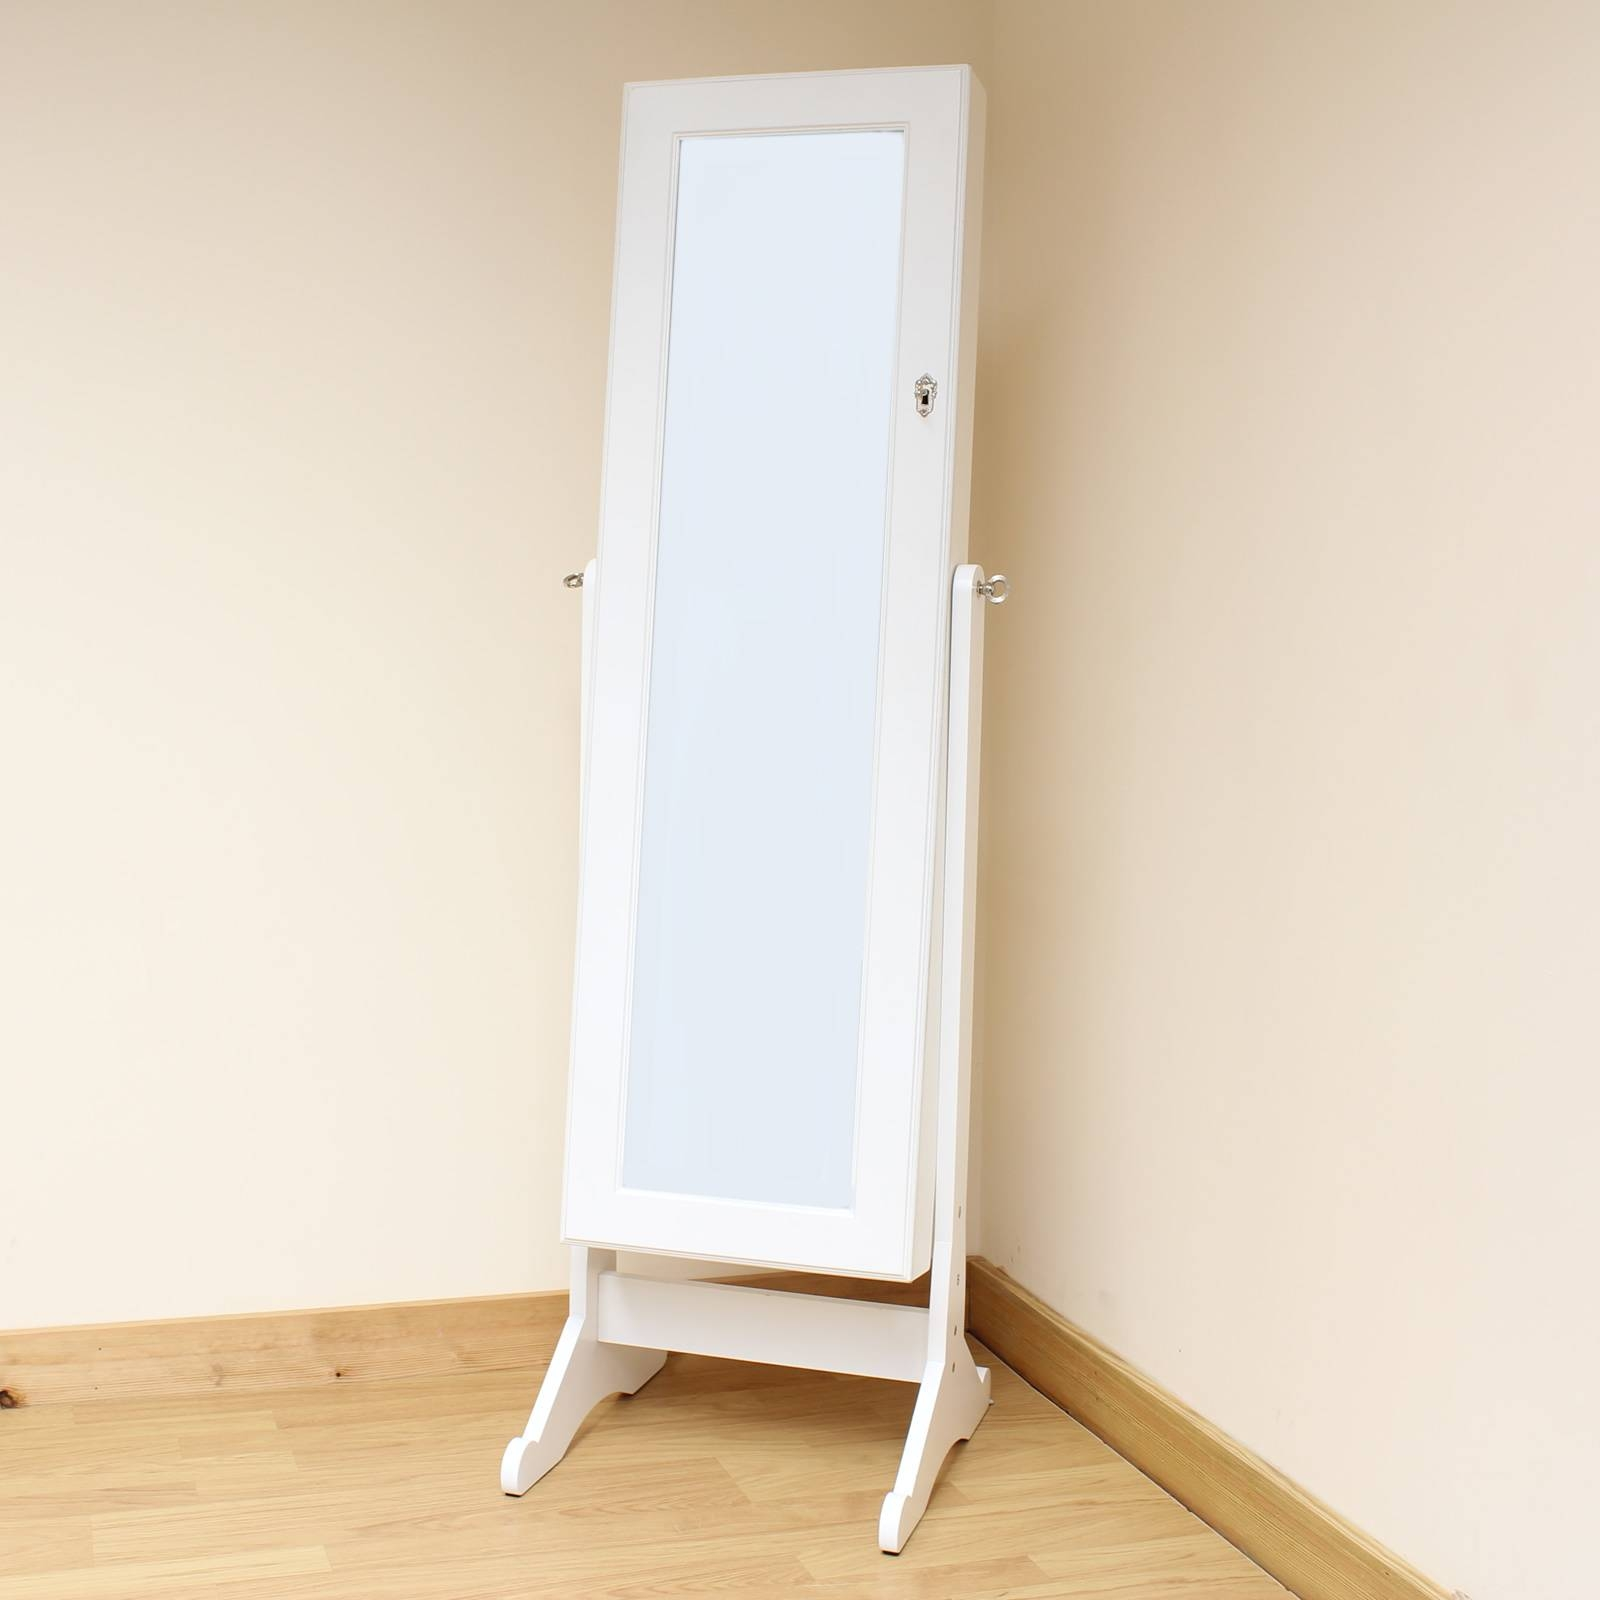 Homeware: Oval Full Length Standing Mirror | Large Floor Mirrors pertaining to Free Standing Long Mirrors (Image 12 of 15)